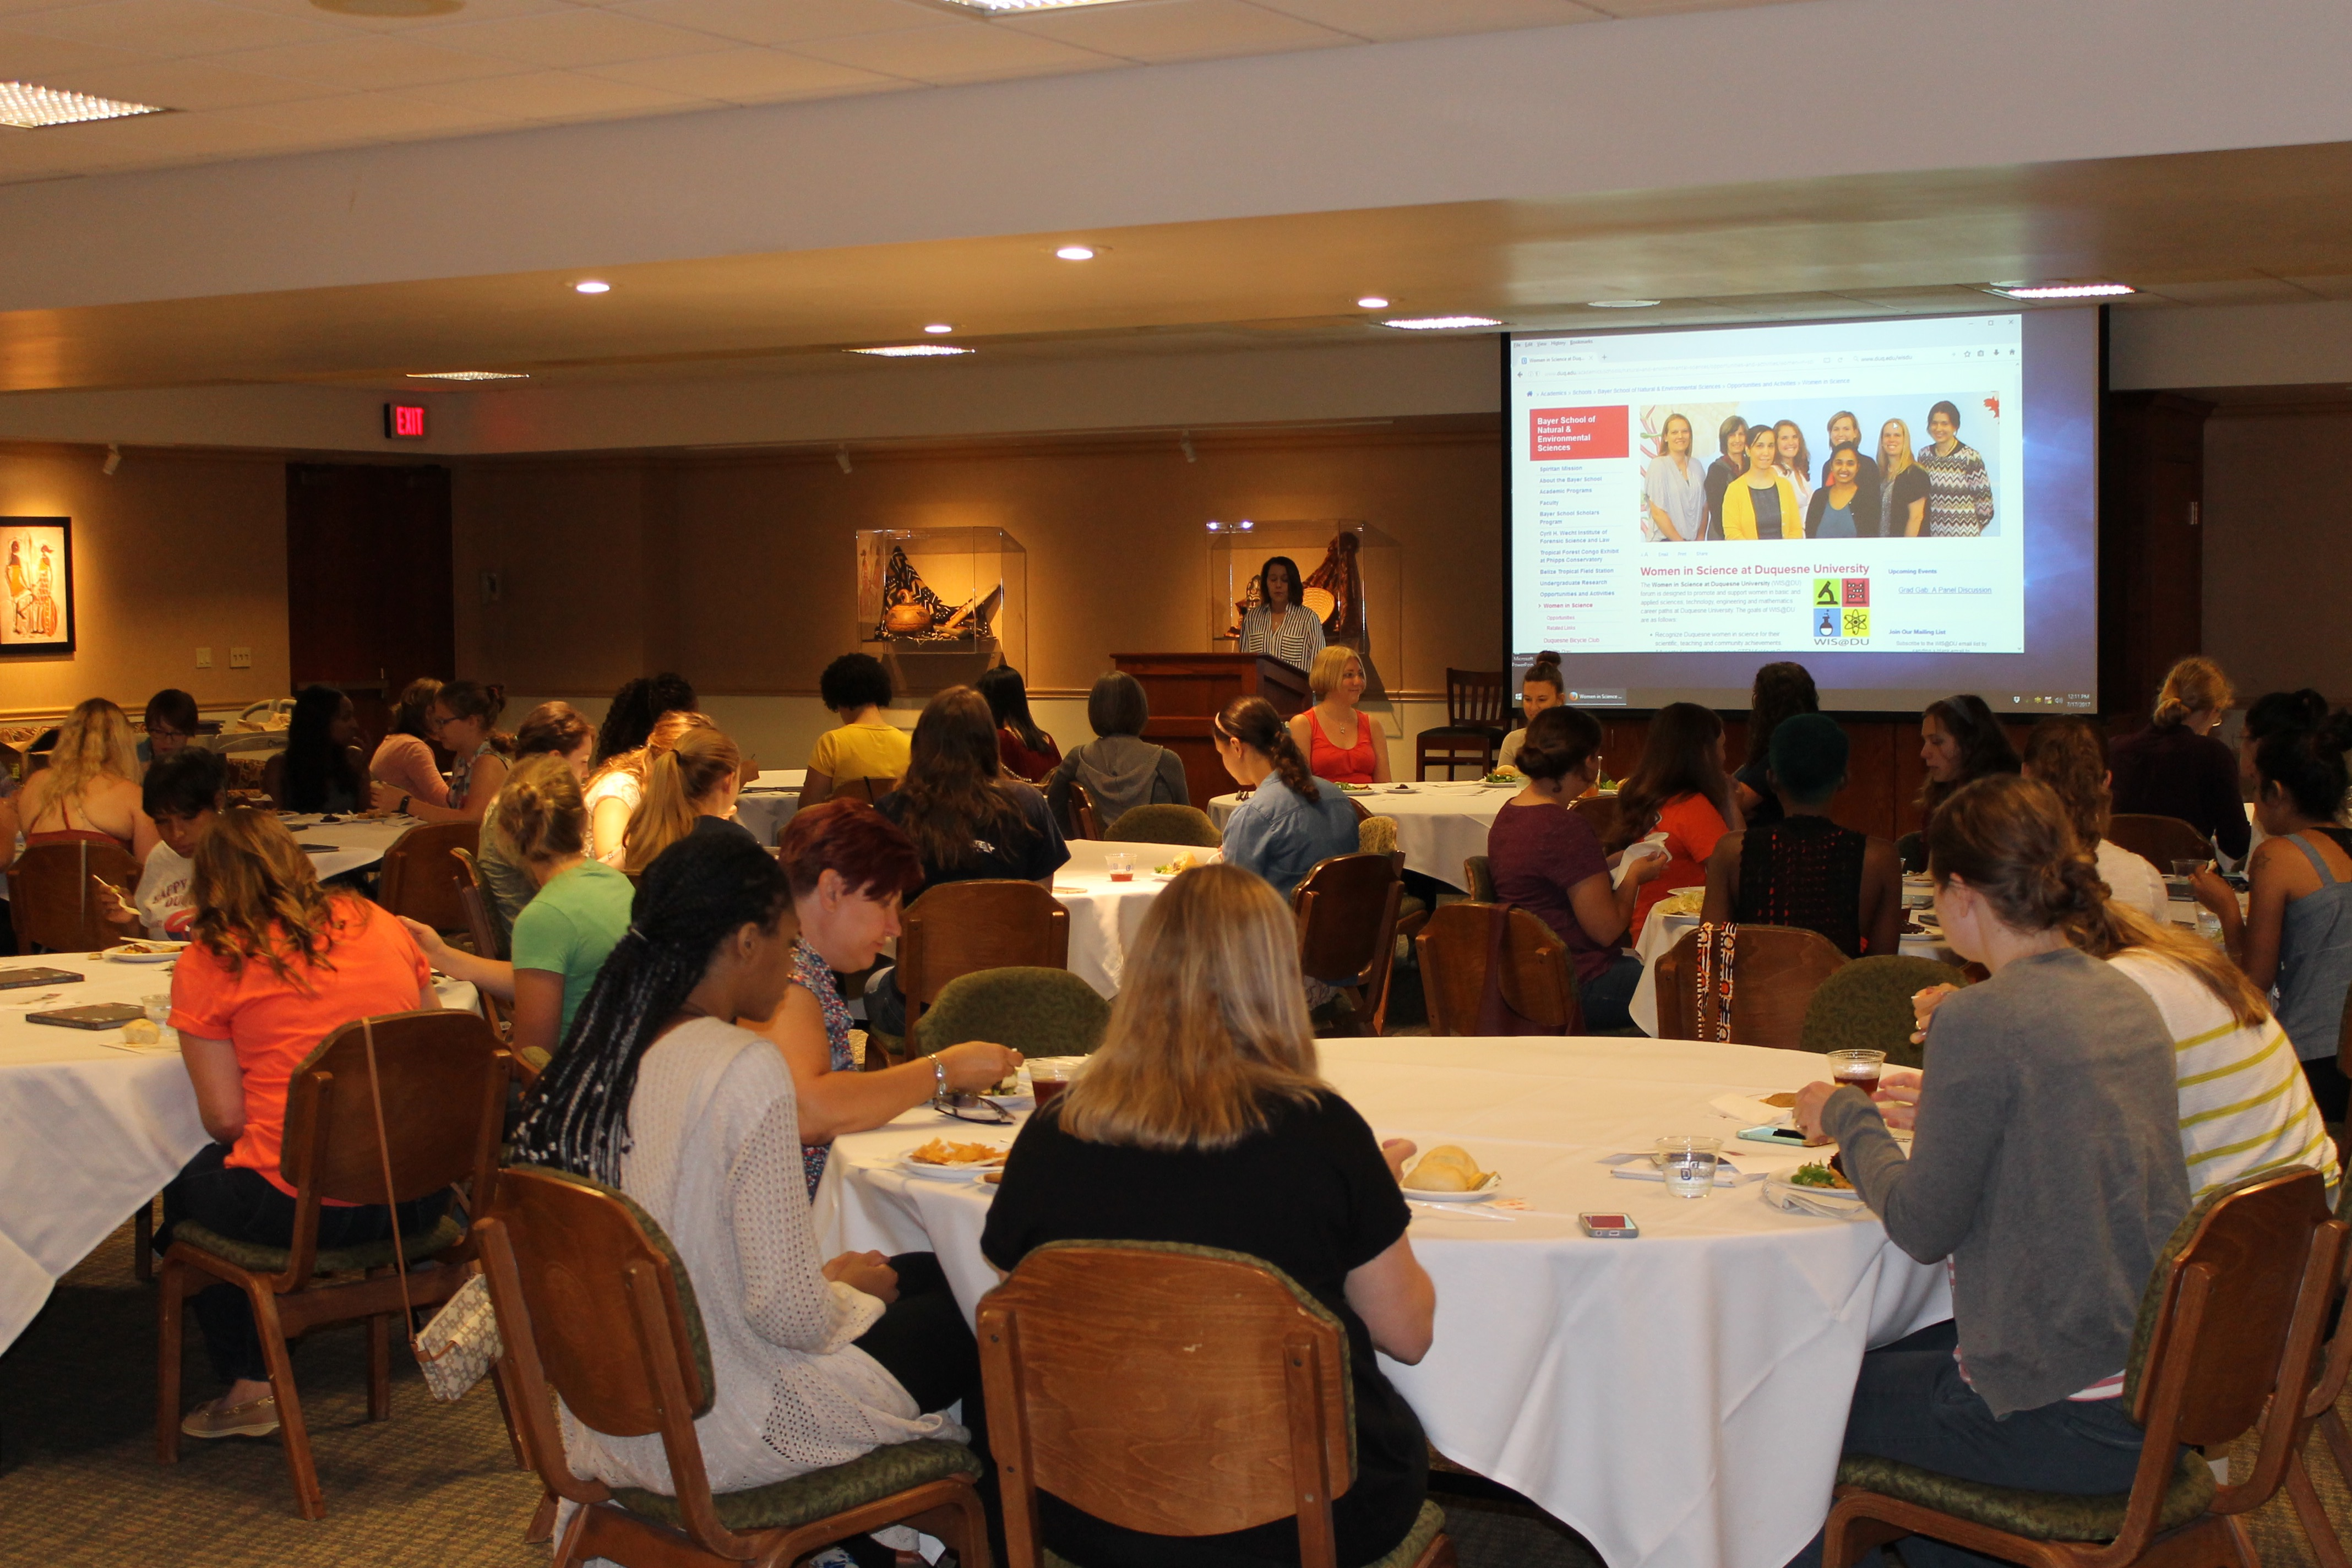 Attendees of the 'Grad Gab' luncheon and panel session on July 17th.